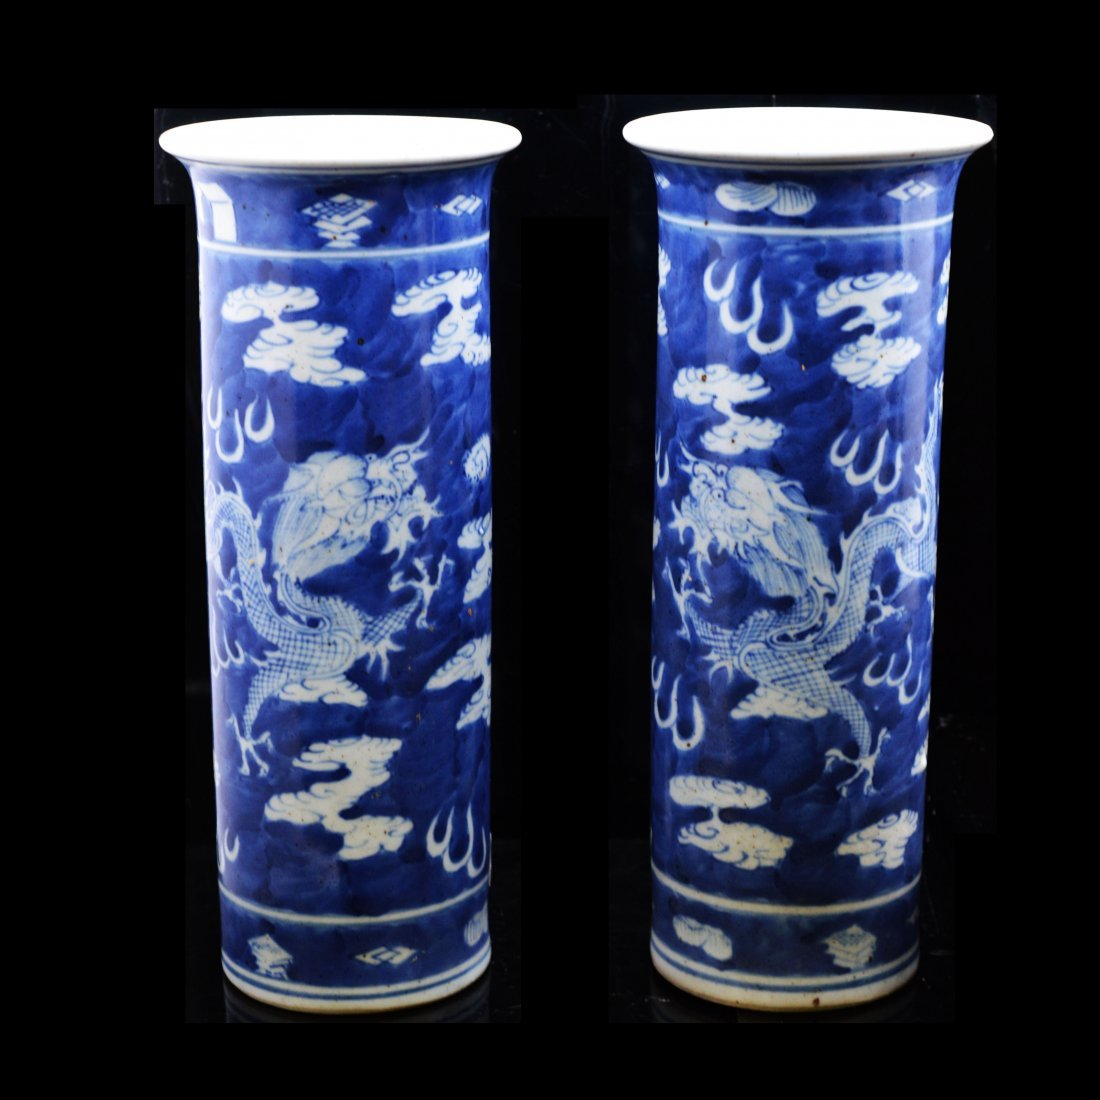 Pair of Vintage Blue & White Porcelain Vases